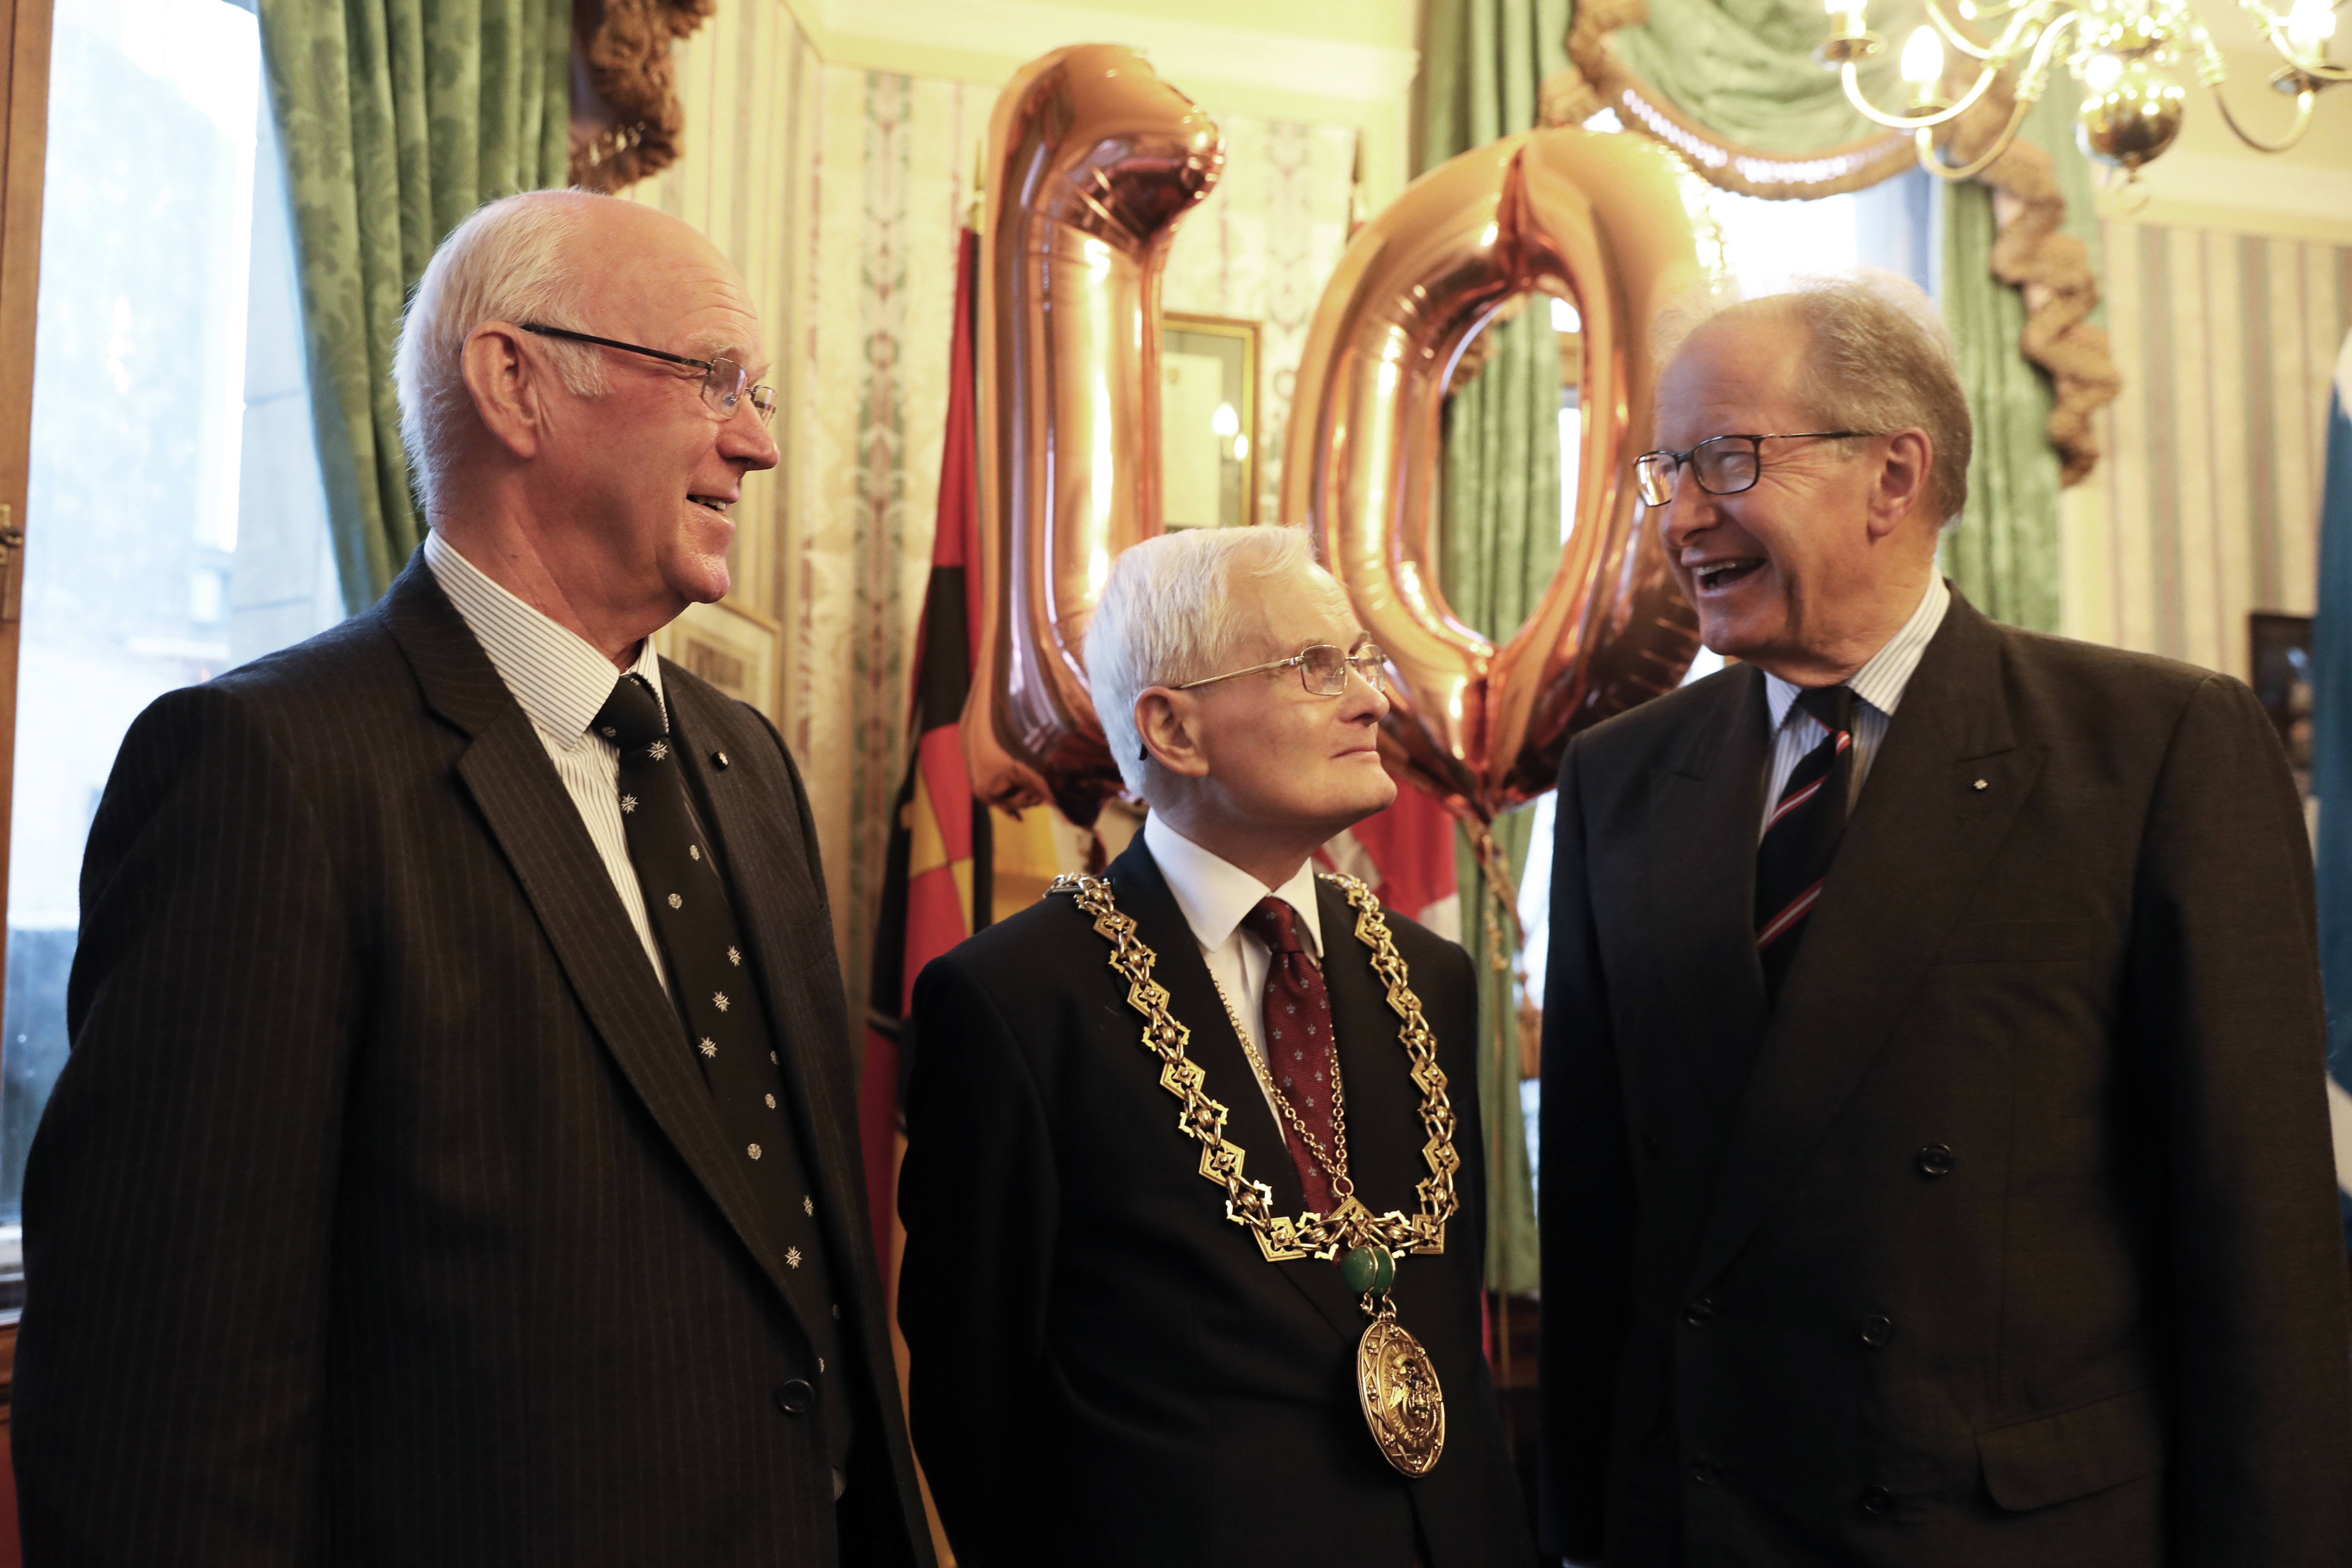 Bill Spence, founder and first volunteer of the service, Lord Provost Ian Borthwick and Major General Mark Strudwick, Prior of St John Scotland at the 10th anniversary celebration.